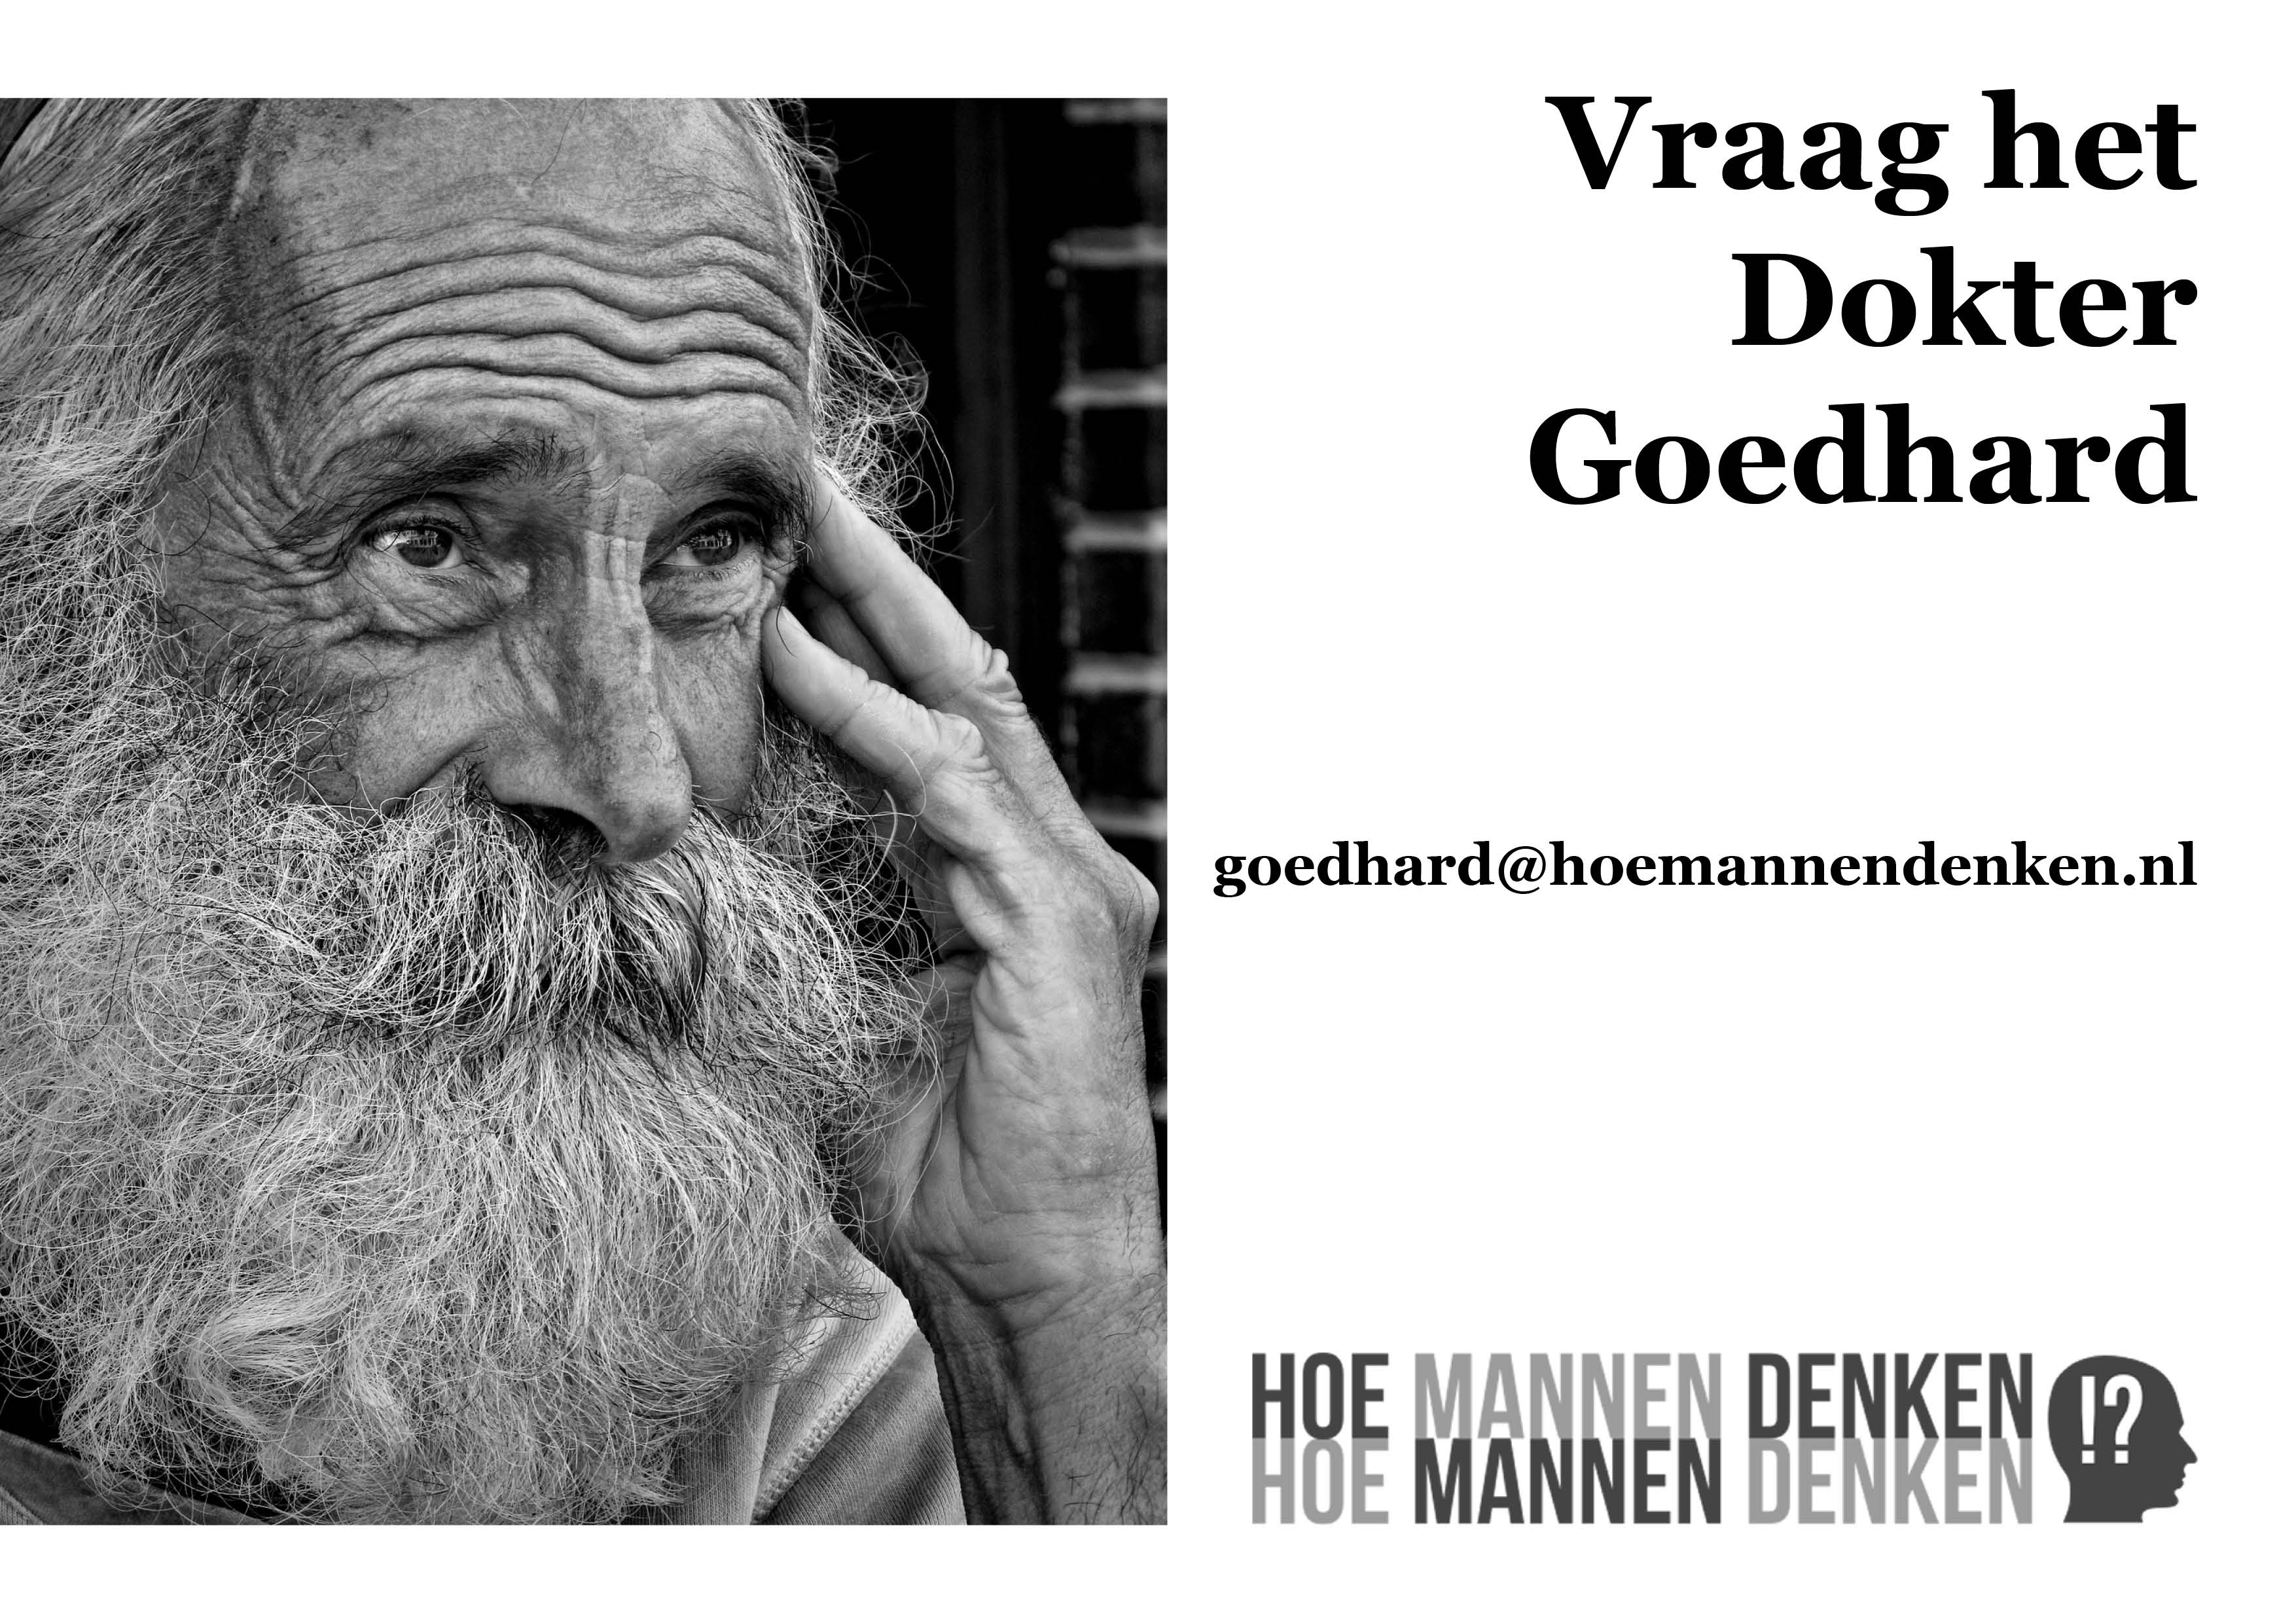 Dokter Goedhard Oude man mail